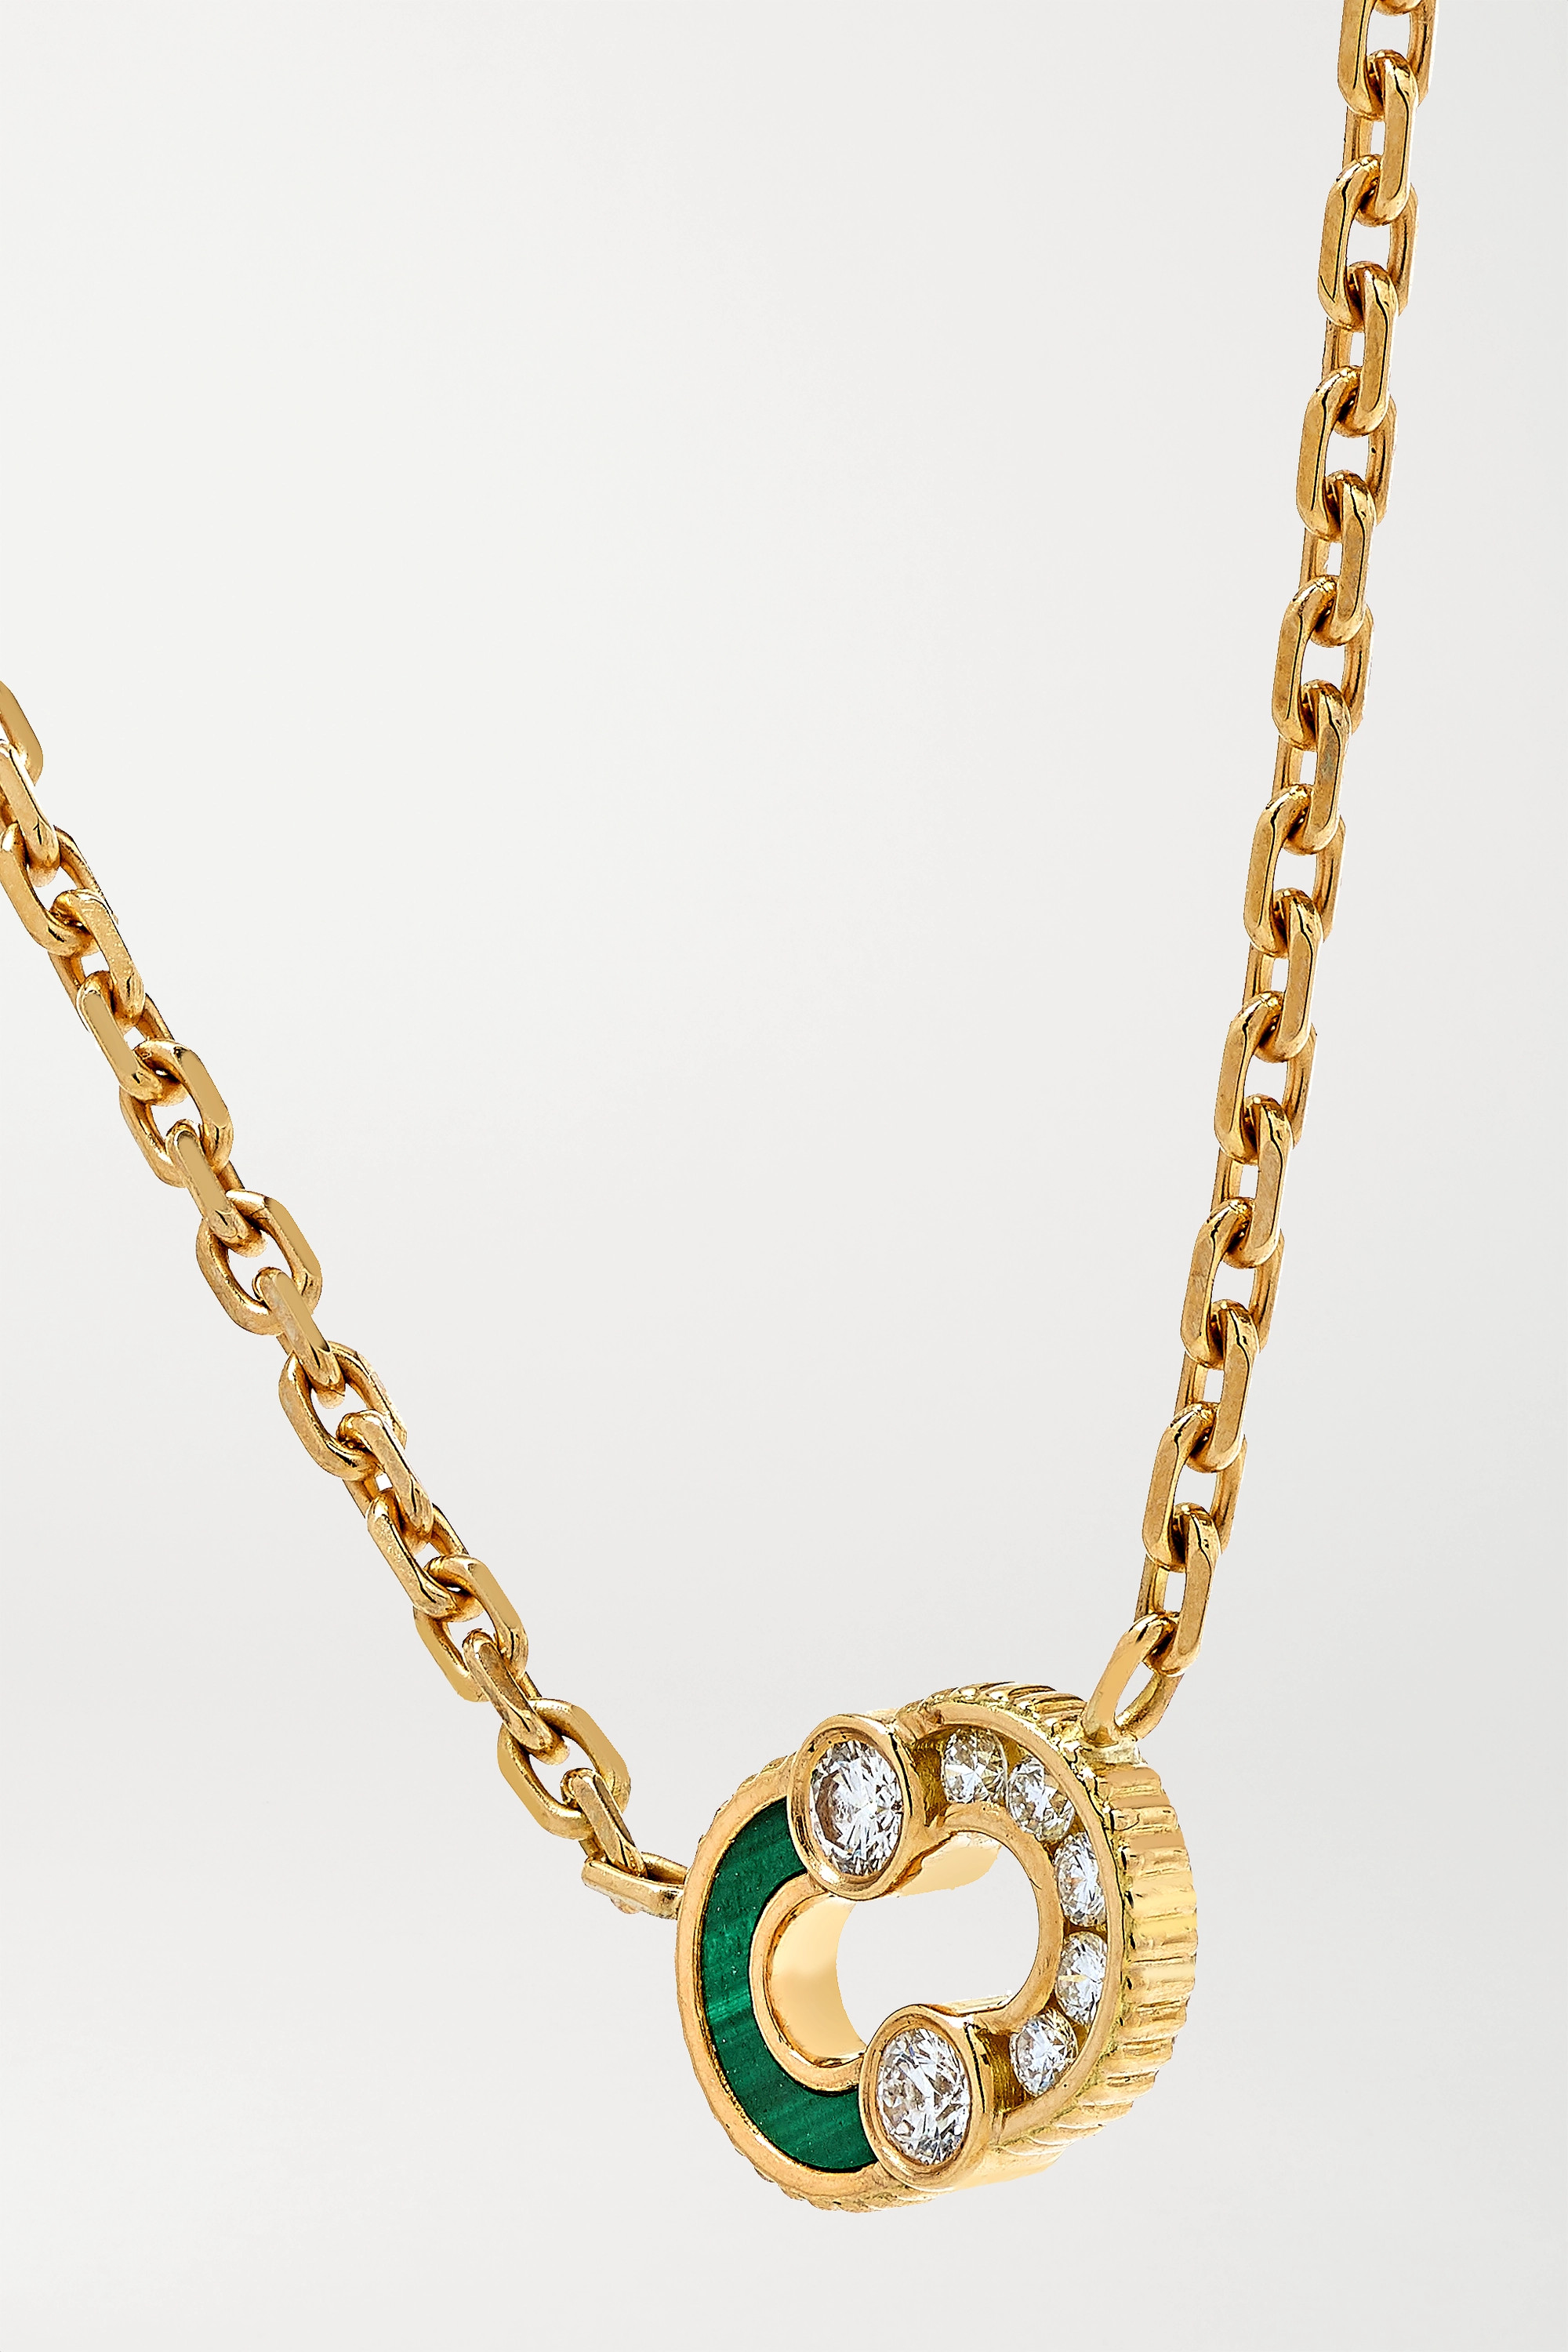 Viltier Collier en or 18 carats, diamants et malachite Magnetic Semi - NET SUSTAIN